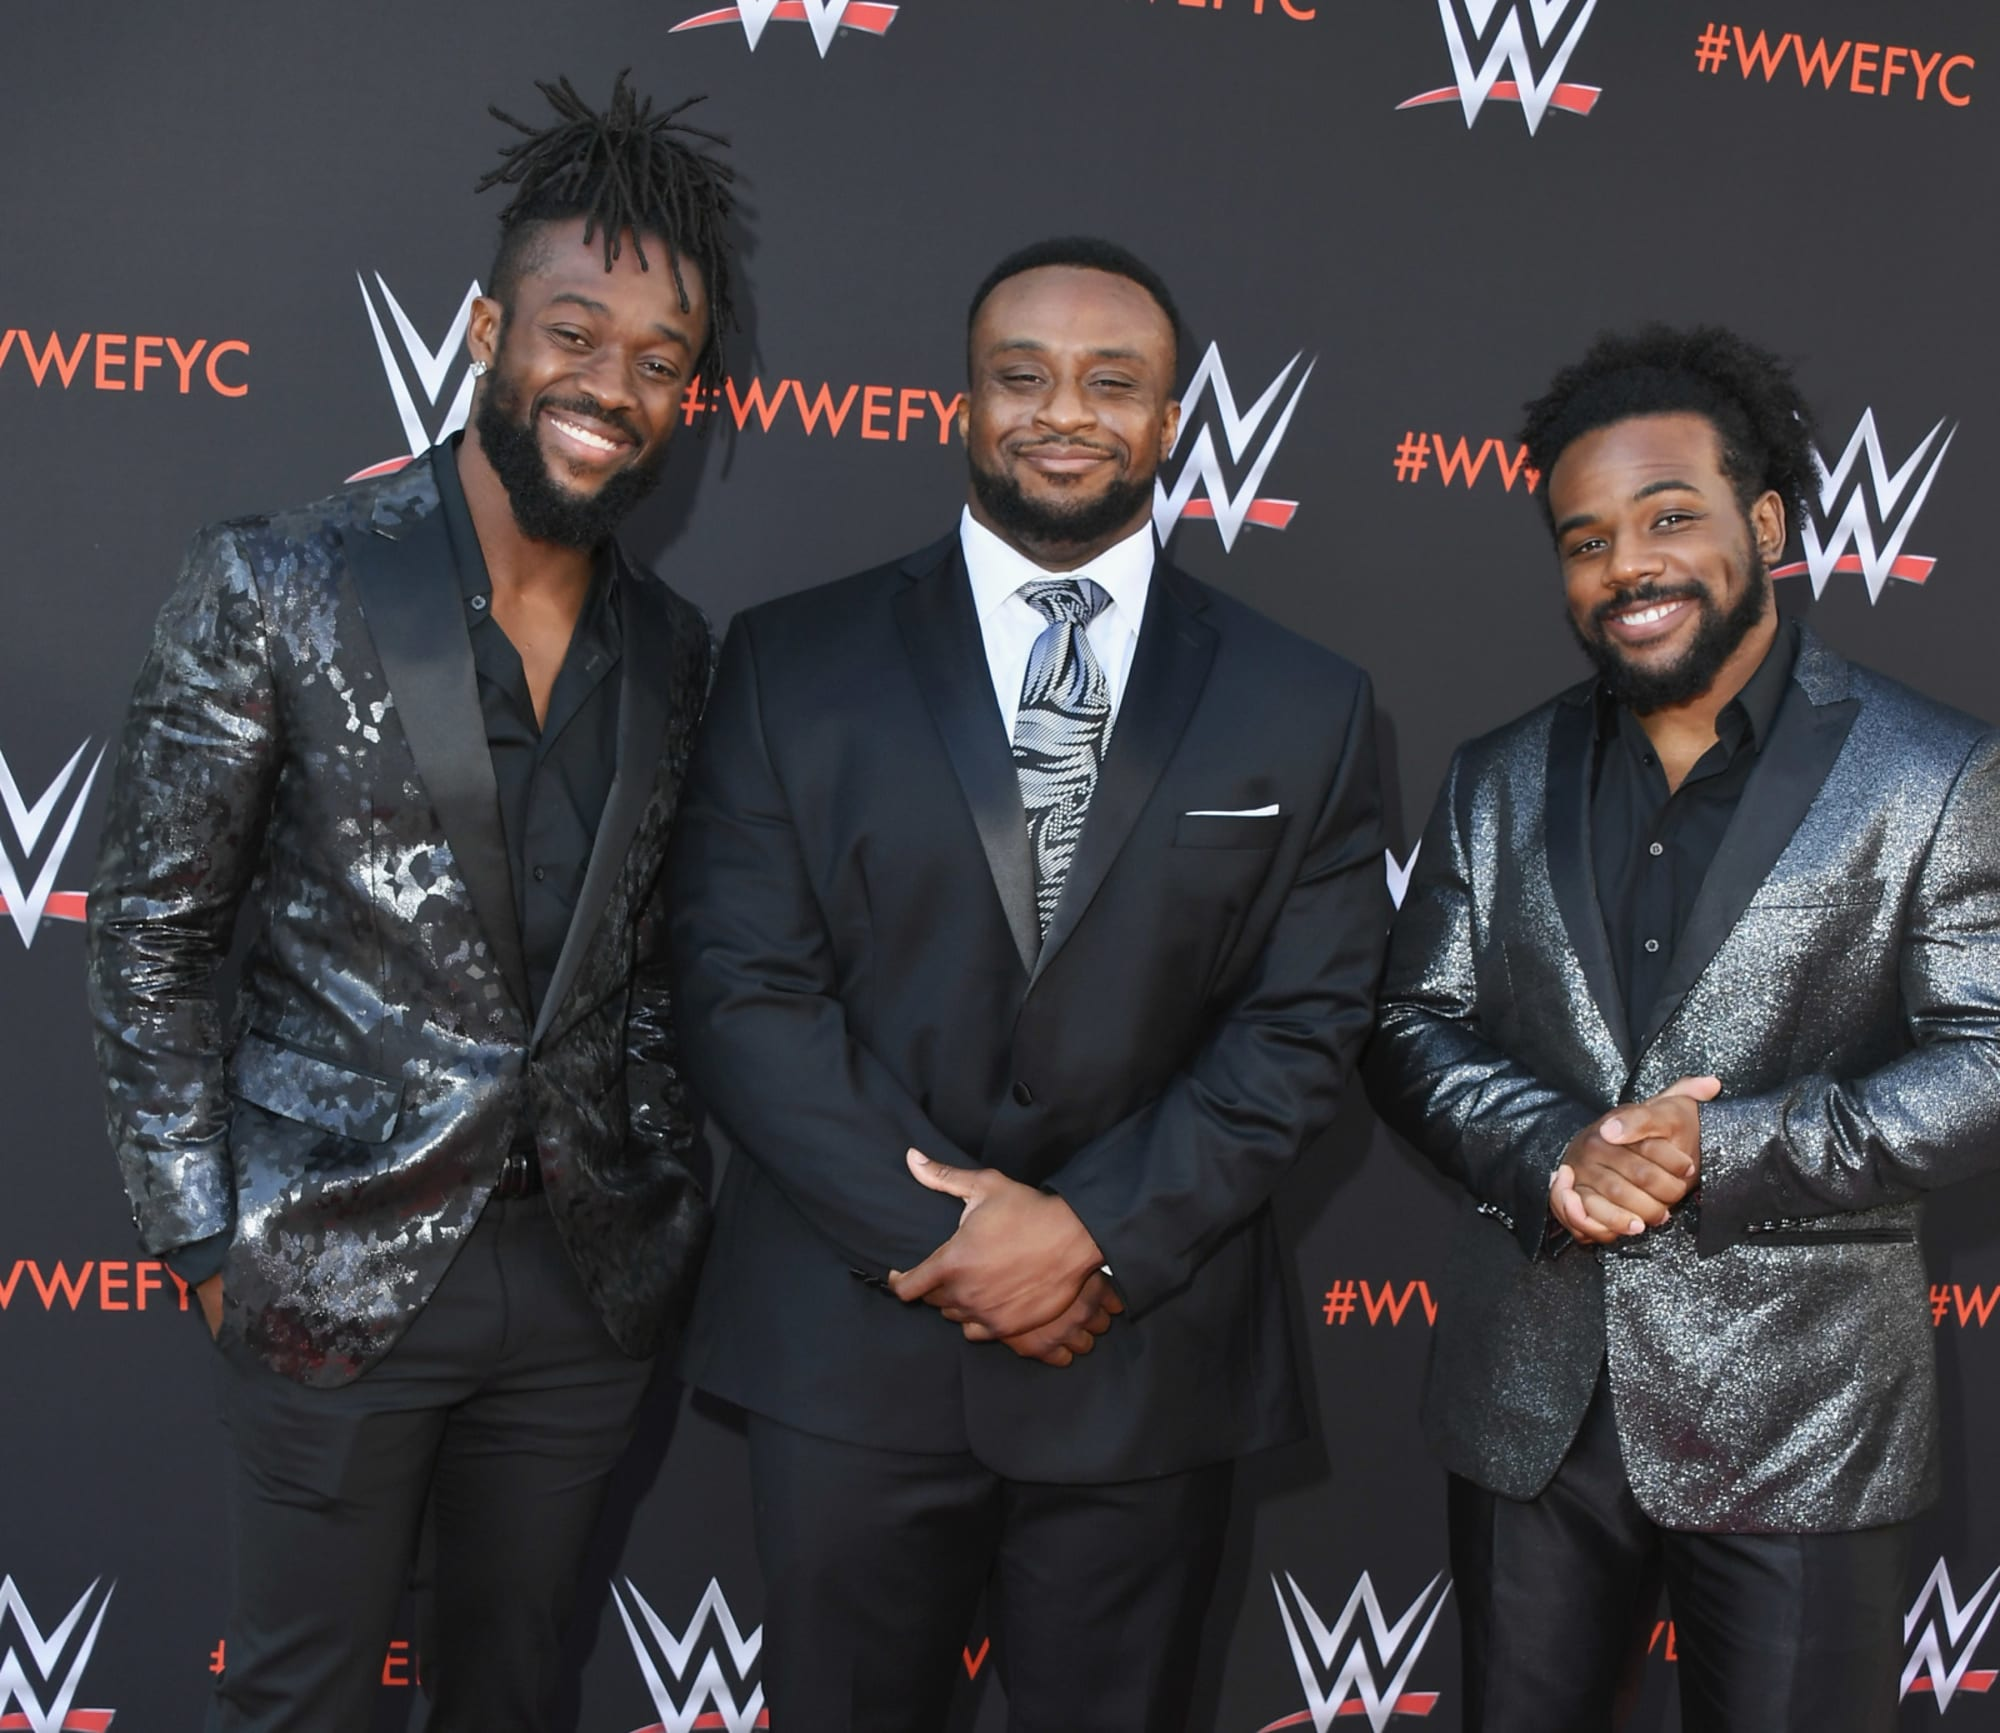 Photo of WWE Smackdown: The New Day take a knee in support of Black Lives Matter protests